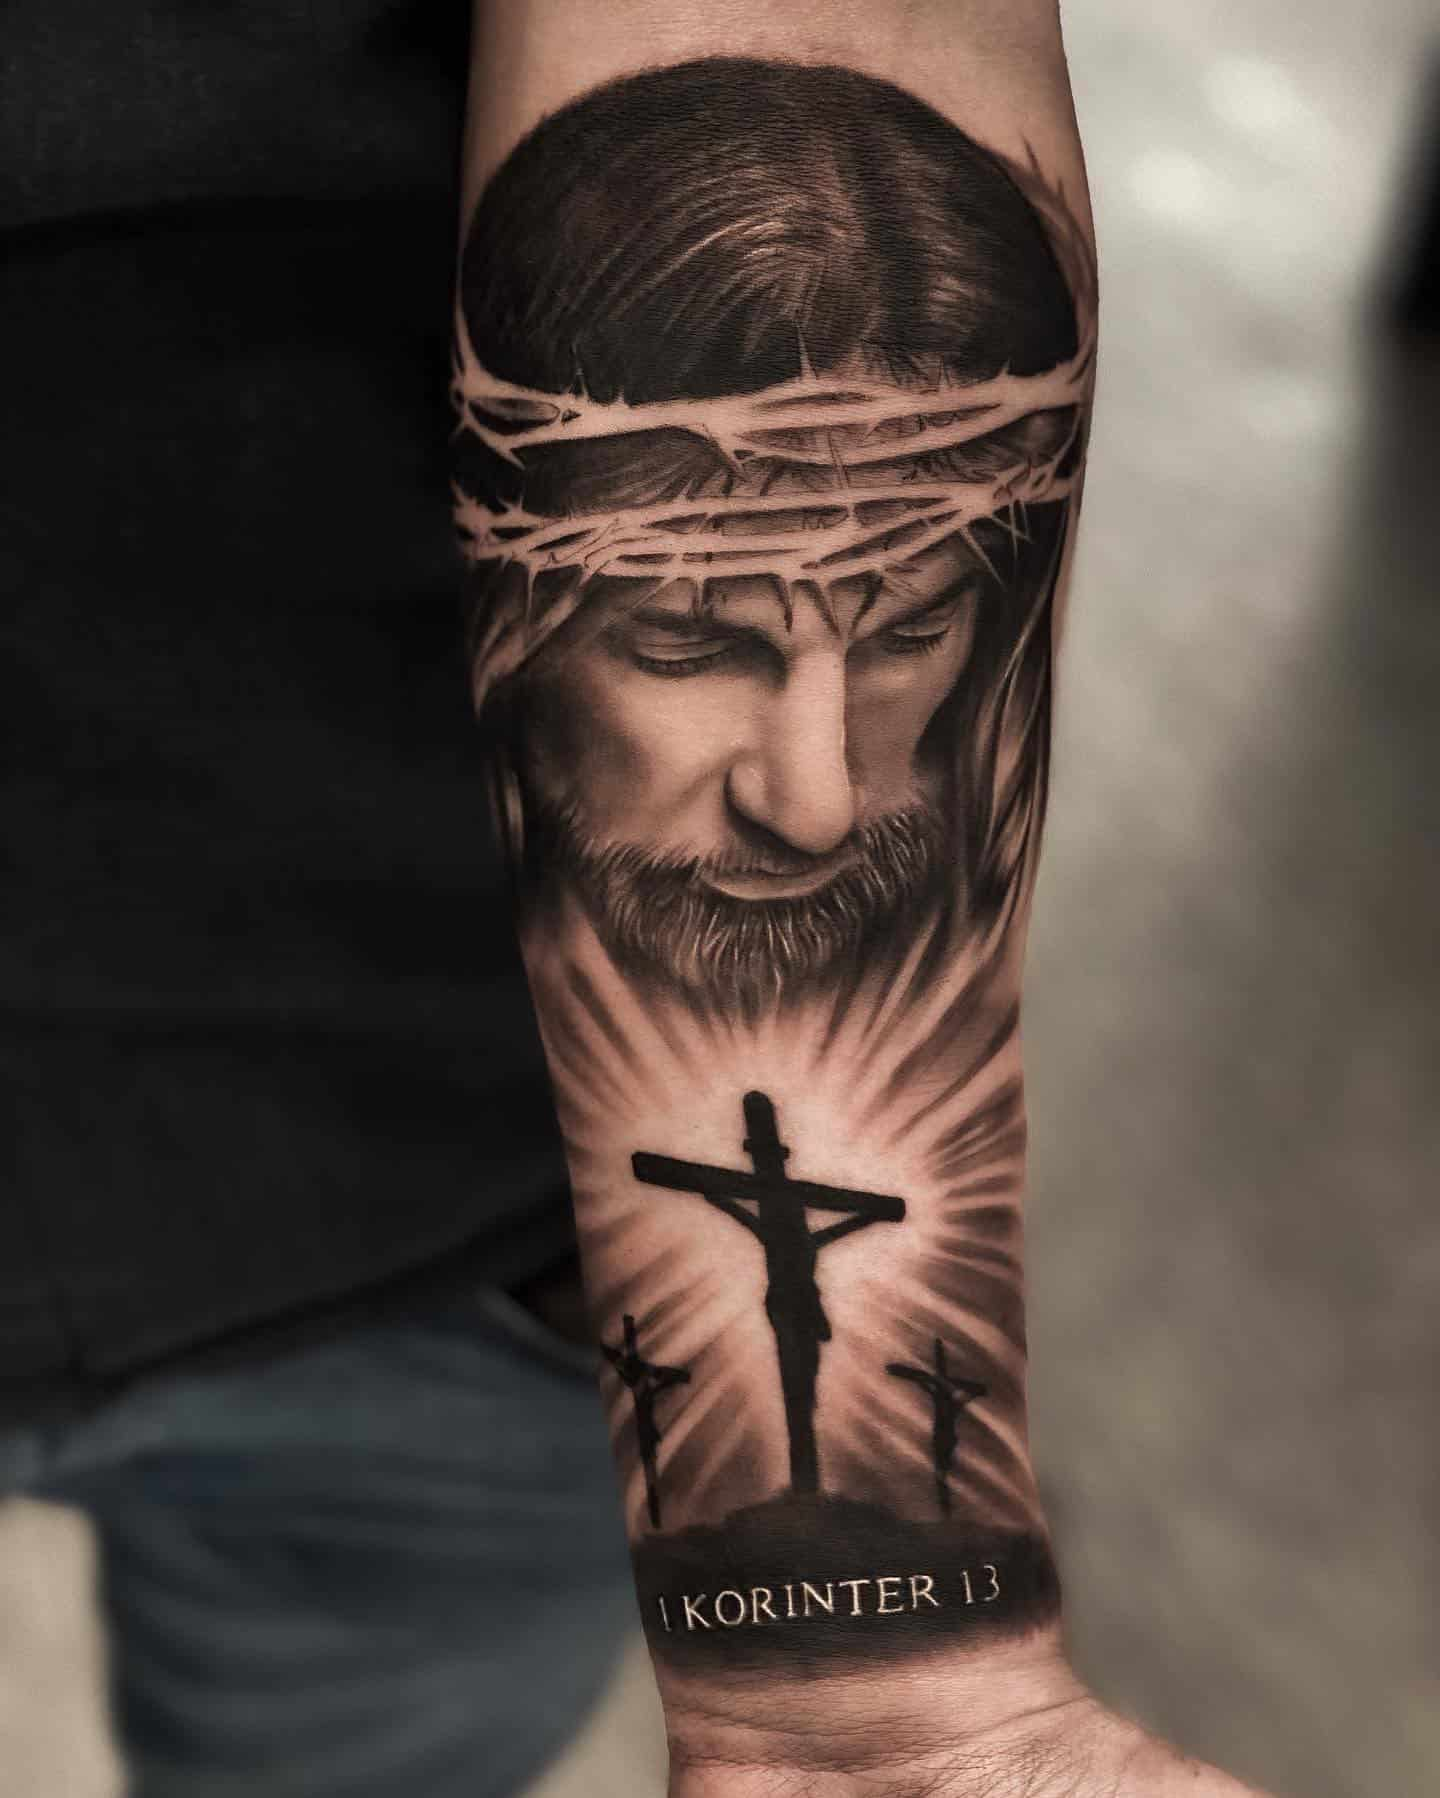 Cross Tattoos, saved tattoo, 6